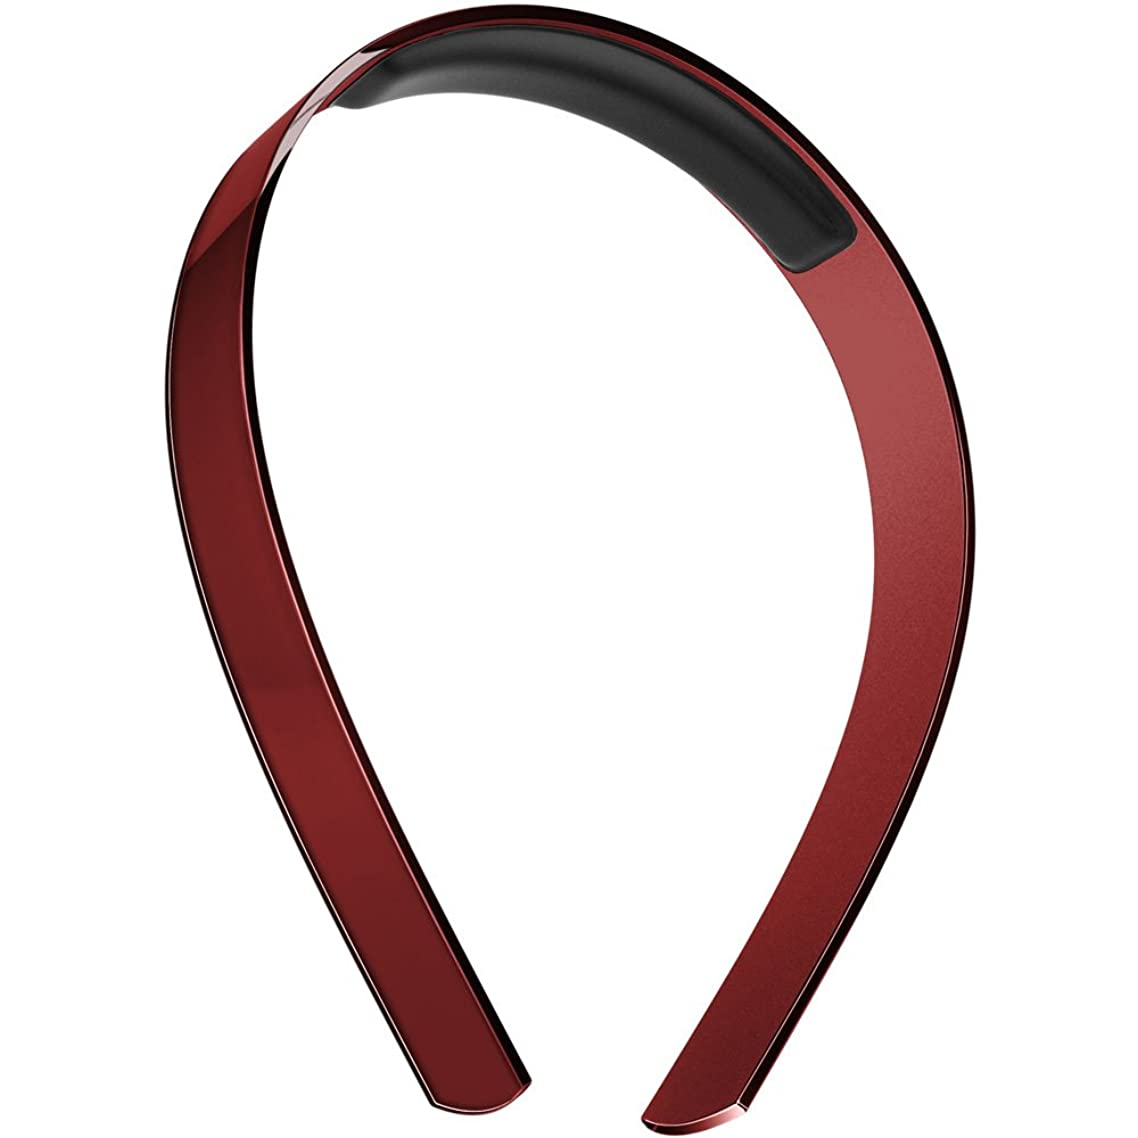 SOL REPUBLIC 1305-33 Interchangeable Headband for Tracks Headphones - Red